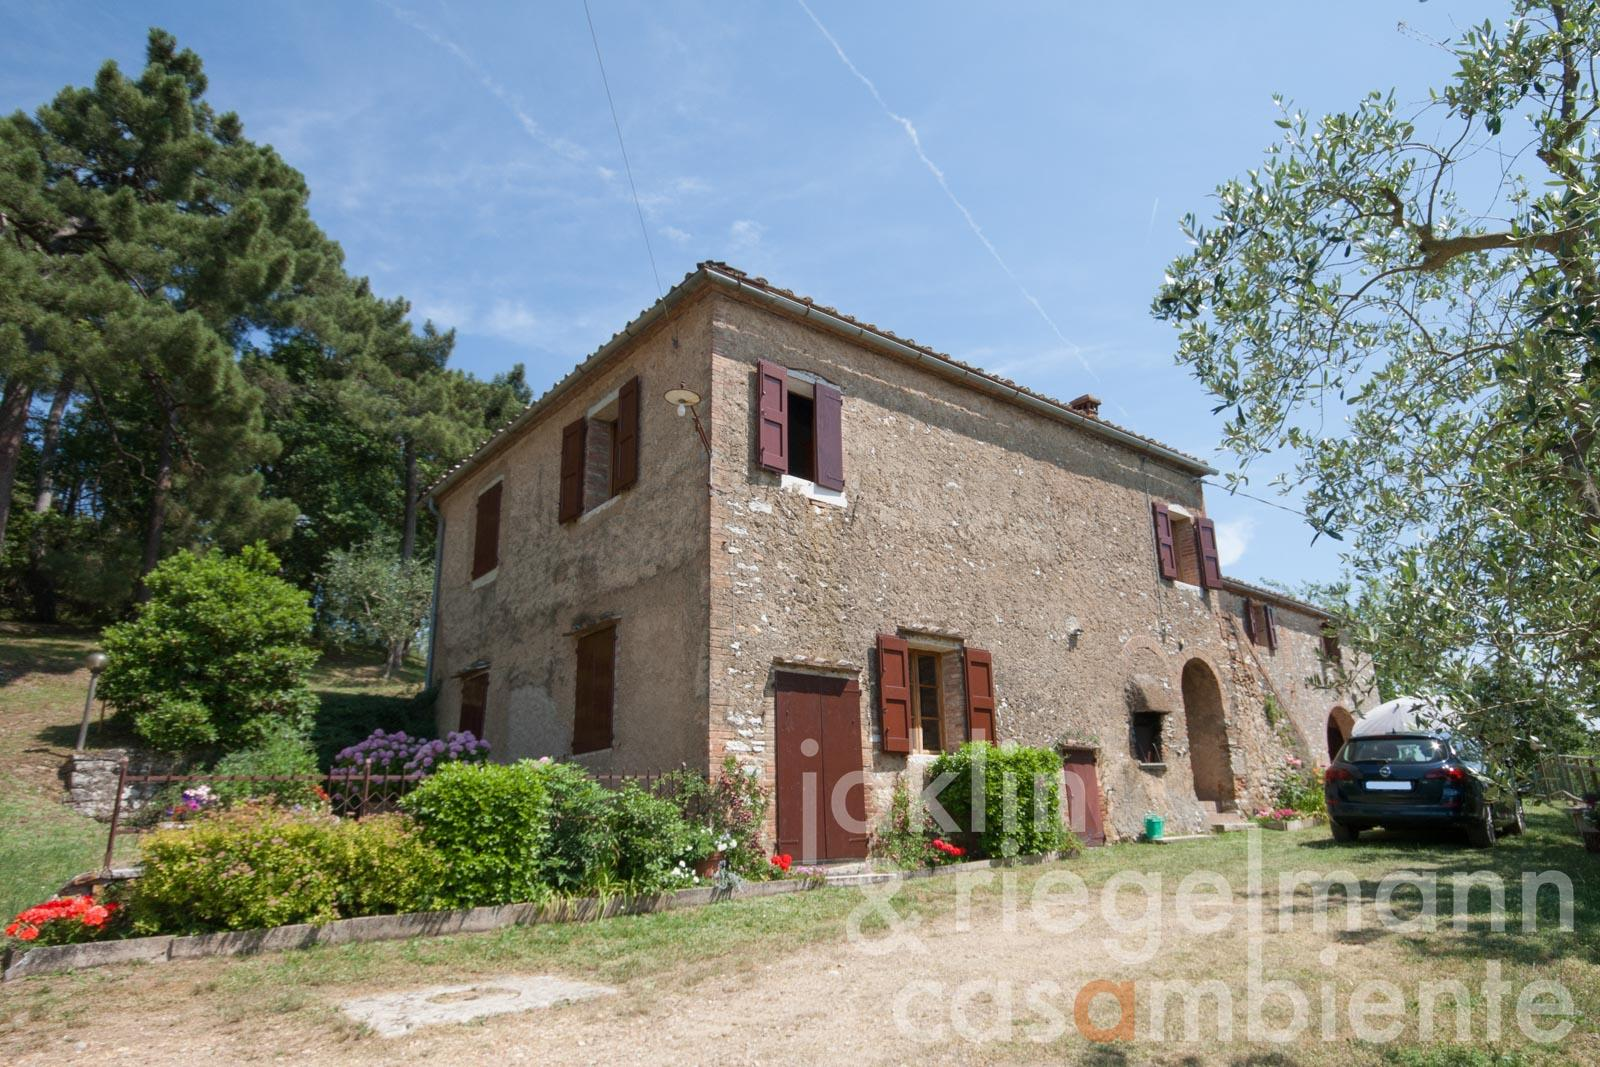 The country house for sale with fantastic panoramic views to Siena and Montalcino 30 km from Siena